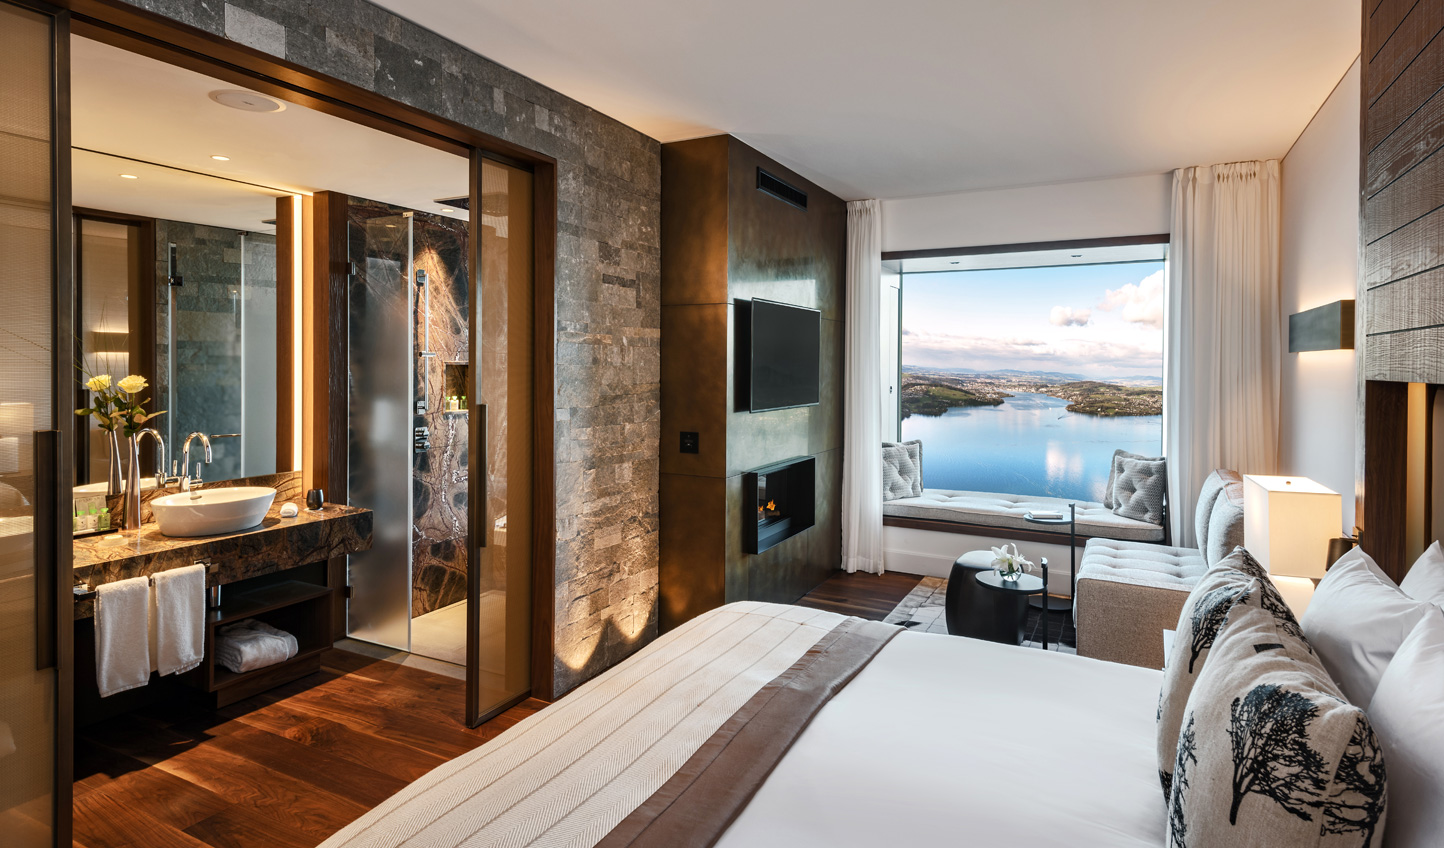 Contemporary and luxurious, Bürgenstock Hotel is a new take on Alpine-chic